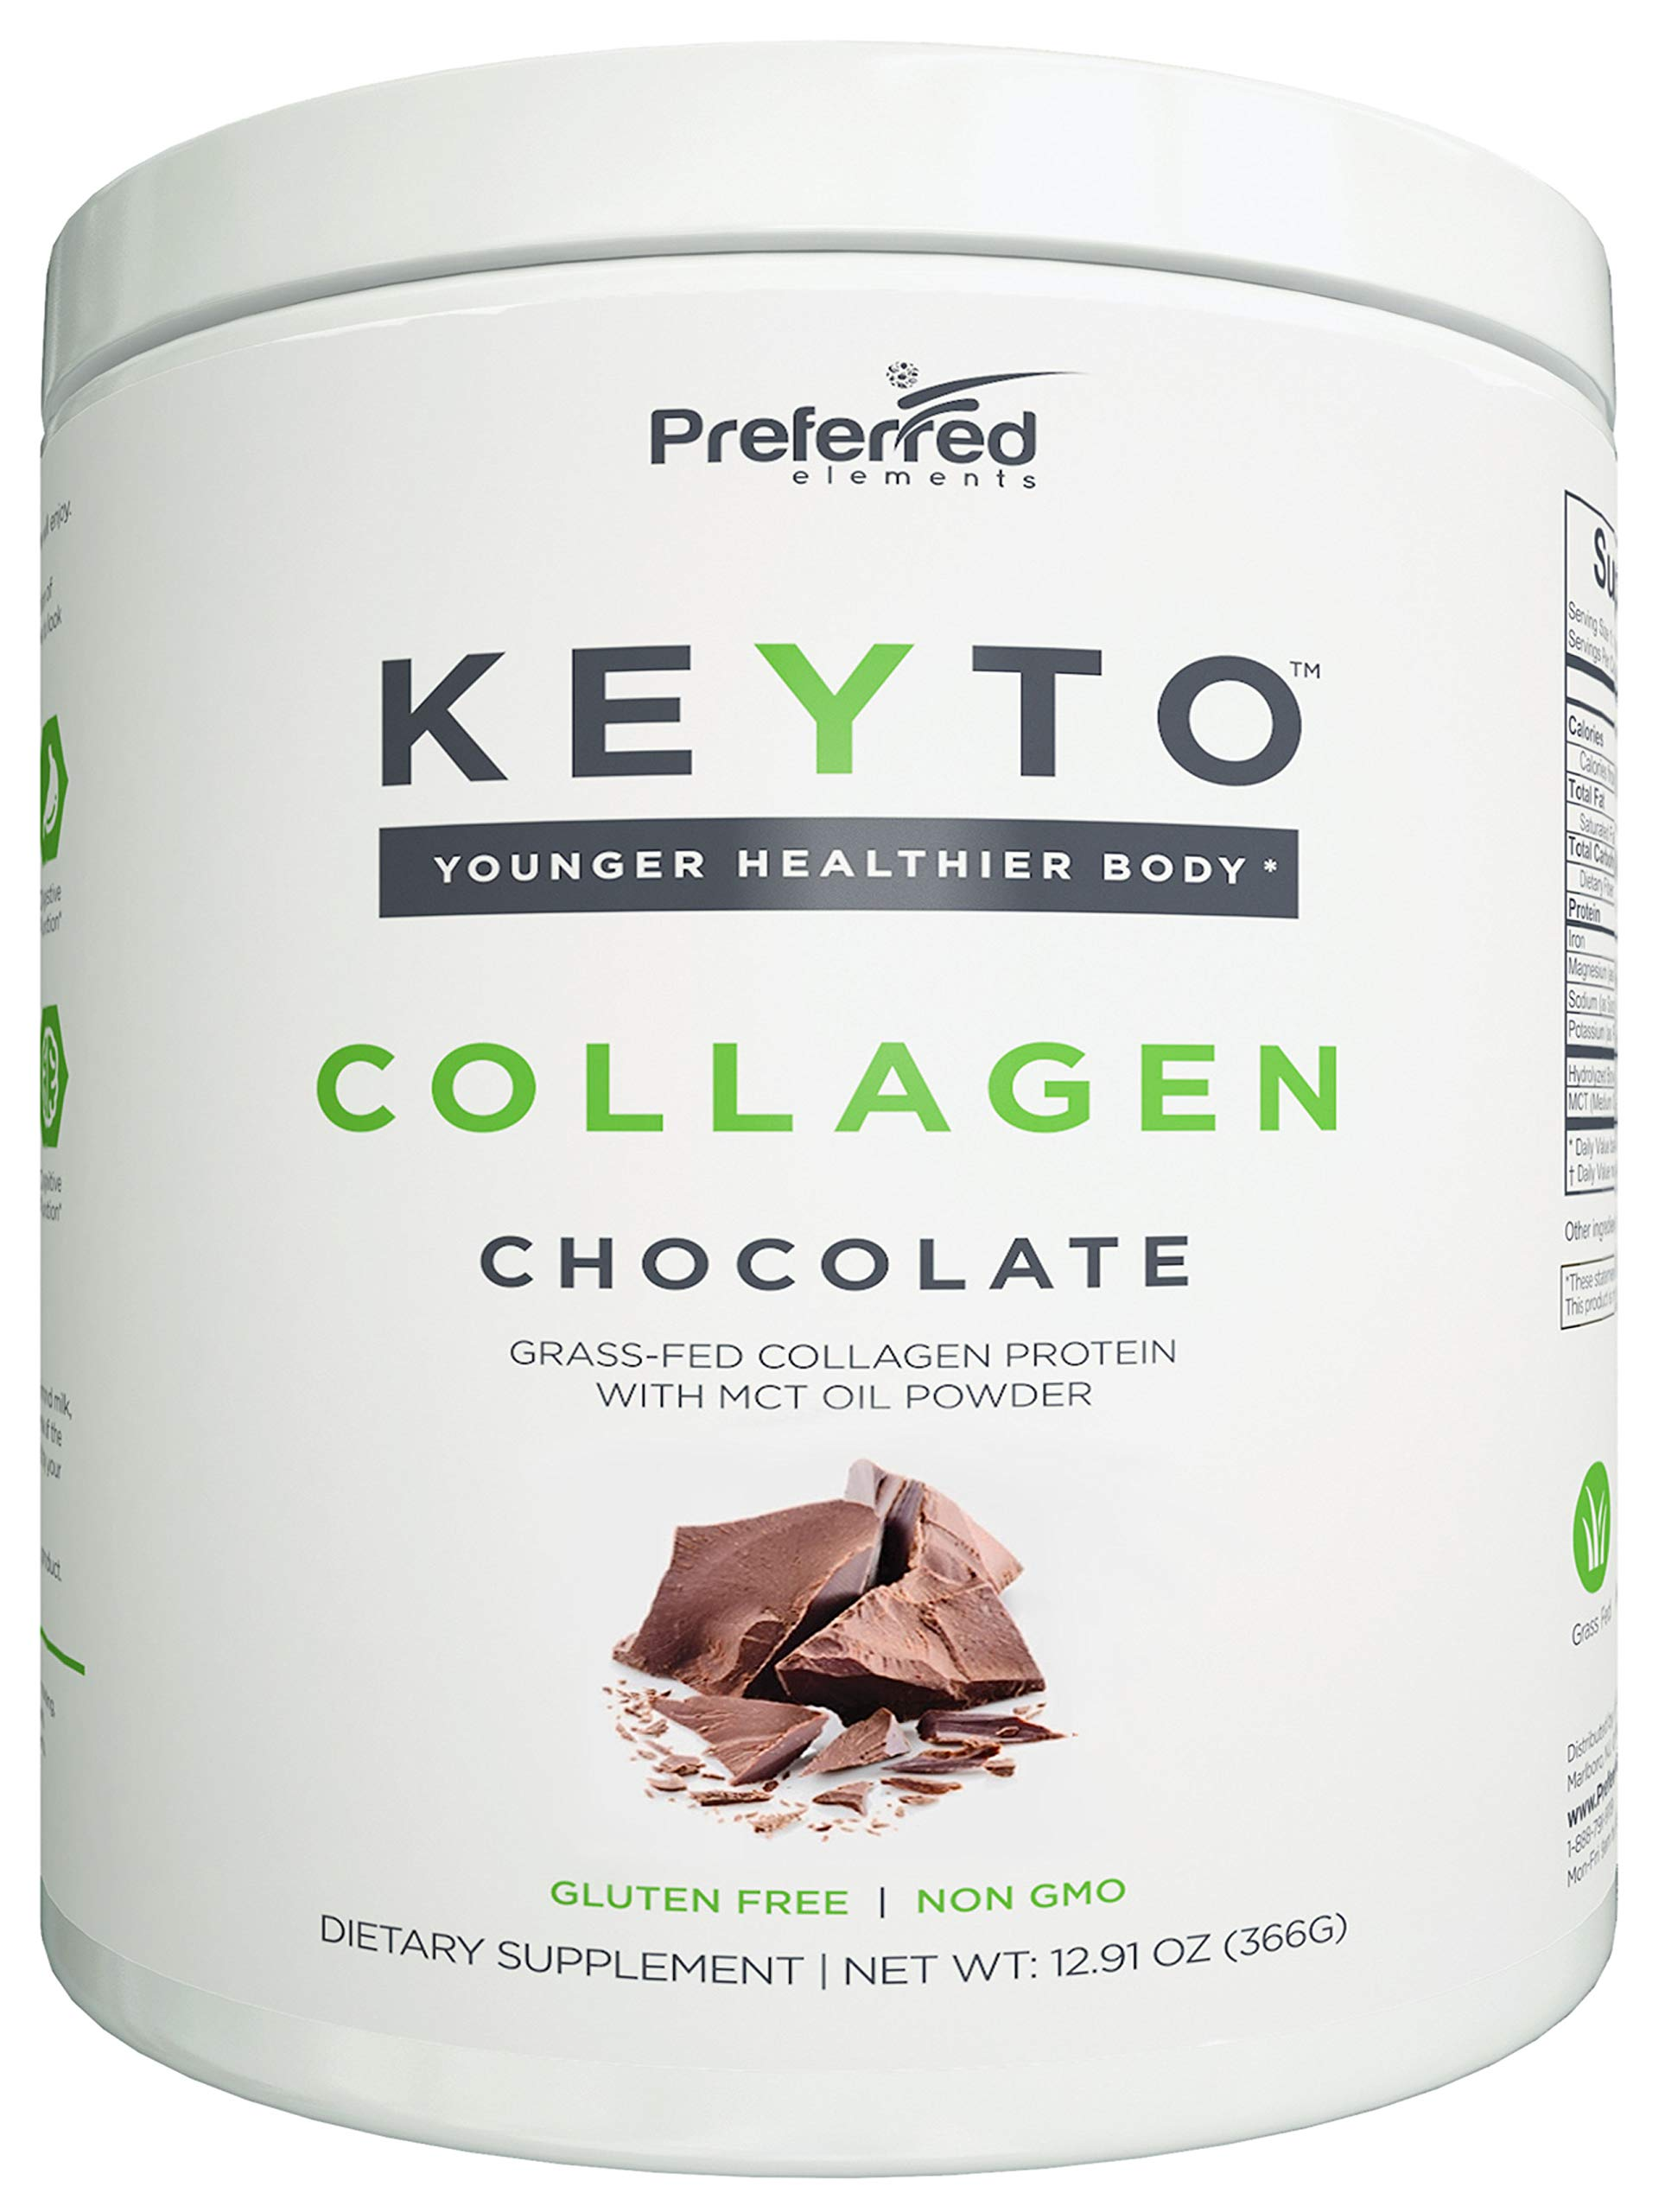 Keto Collagen Protein Powder with MCT Oil - Keto and Paleo Friendly Pure Grass Fed Pasture Raised Hydrolyzed Collagen Peptides - Fits Low Carb Diet and Keto Snacks - KEYTO Chocolate Flavor by Preferred Elements